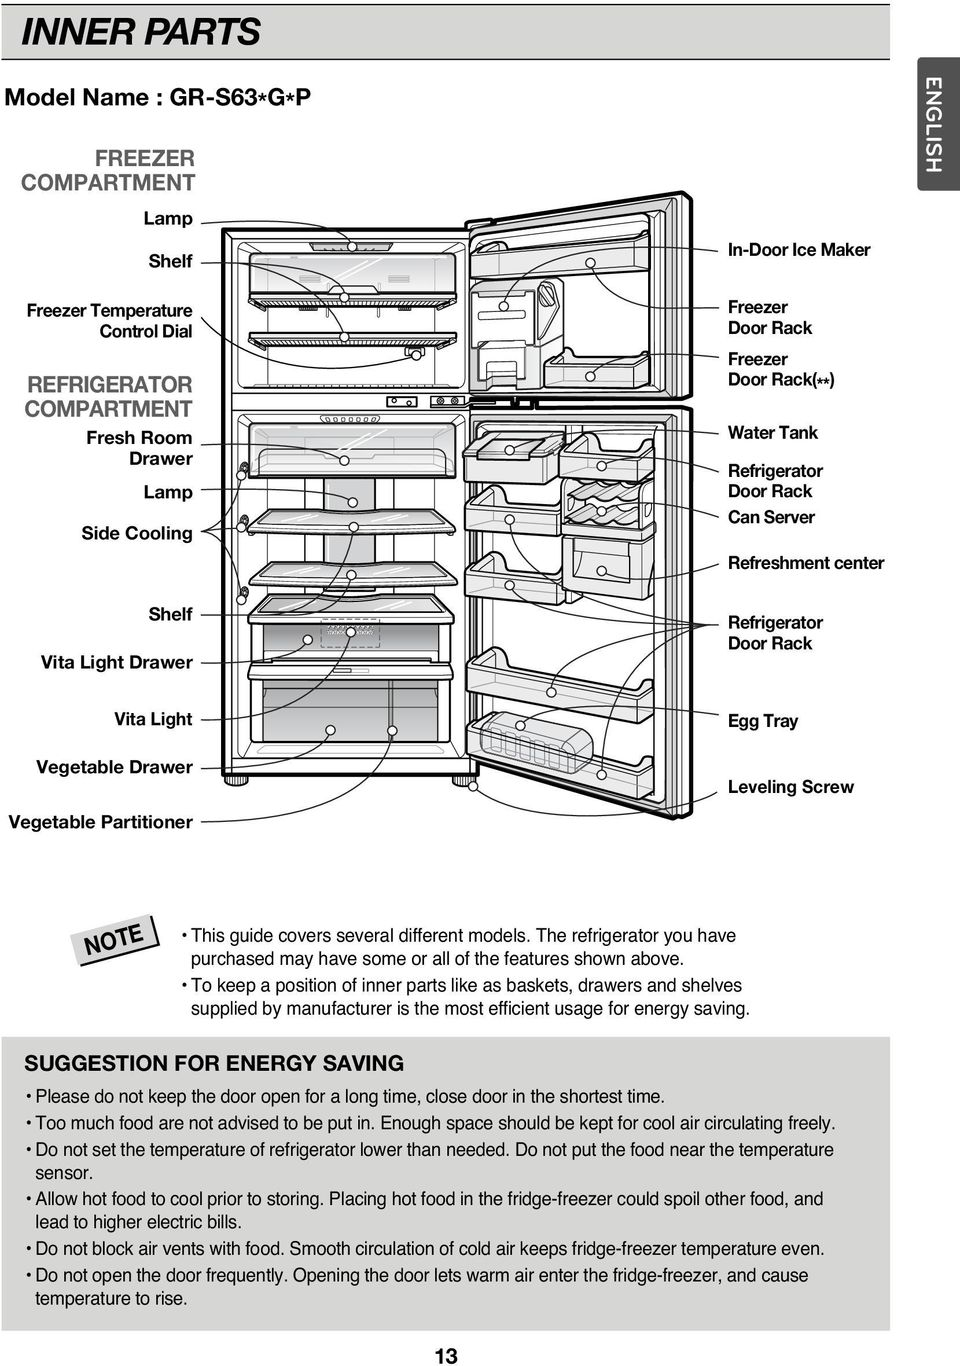 Tray Leveling Screw NOTE This guide covers several different models. The refrigerator you have purchased may have some or all of the features shown above.